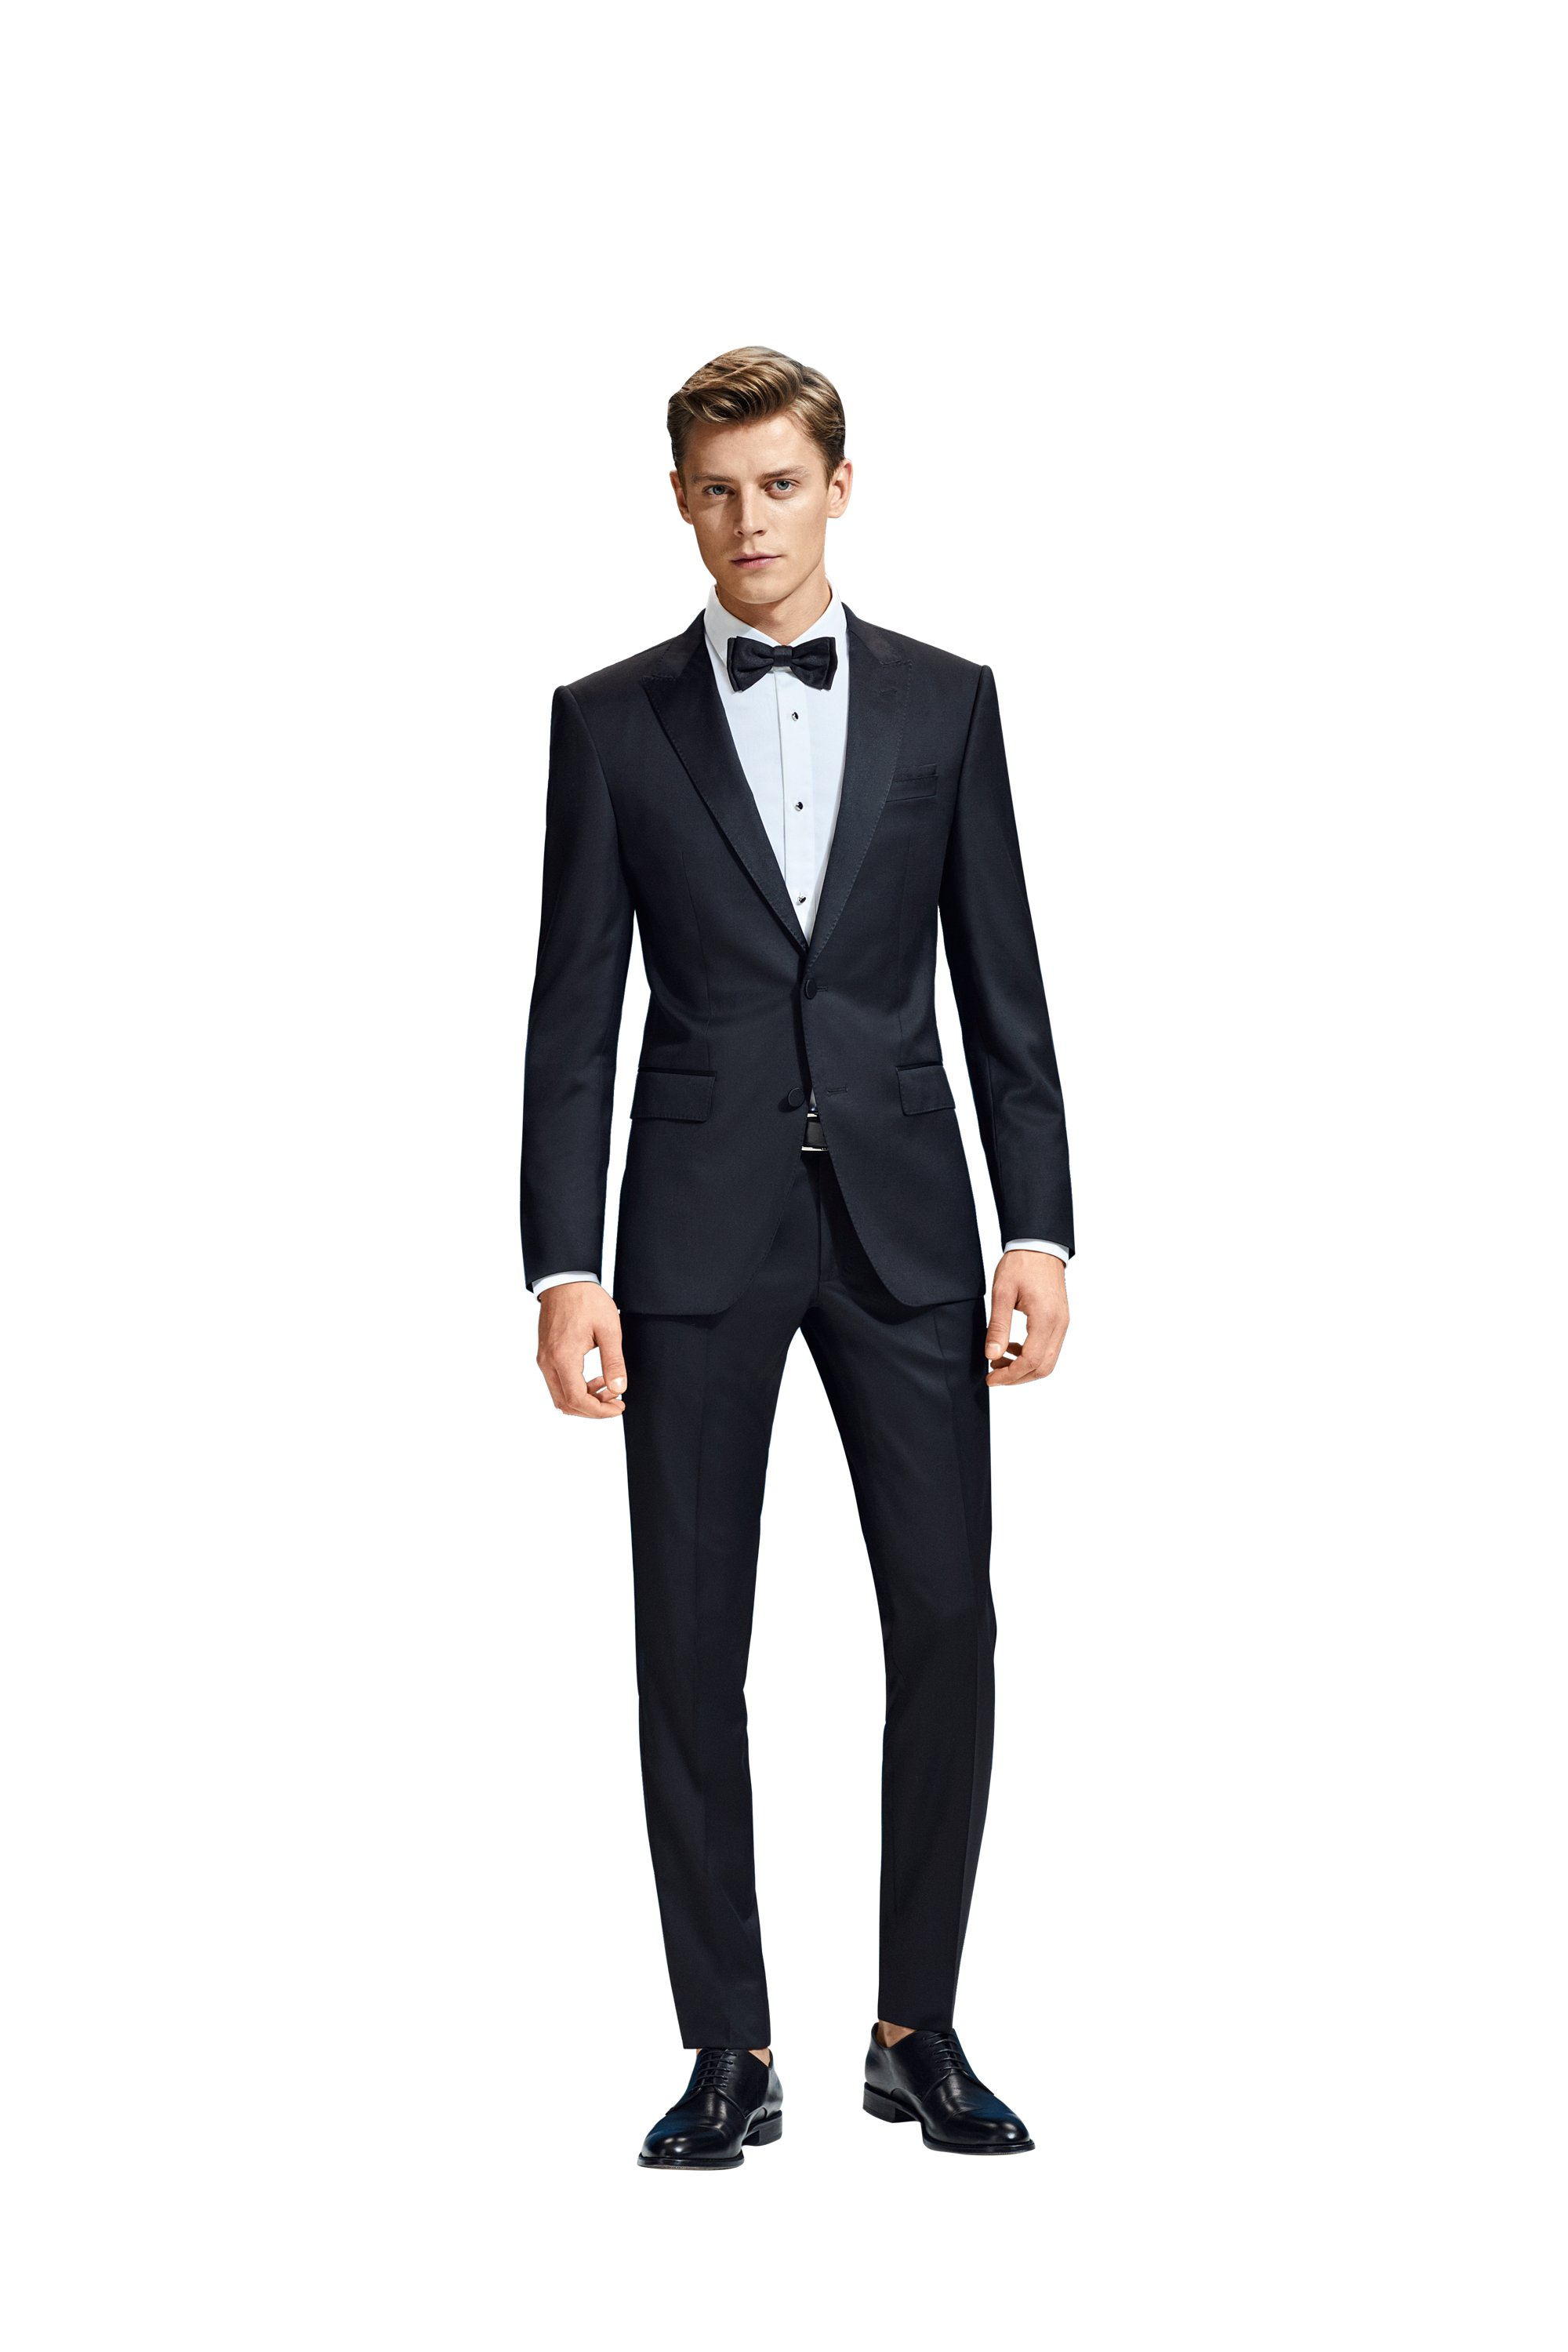 BOSS_Men_S17SR_wedding_Look_24